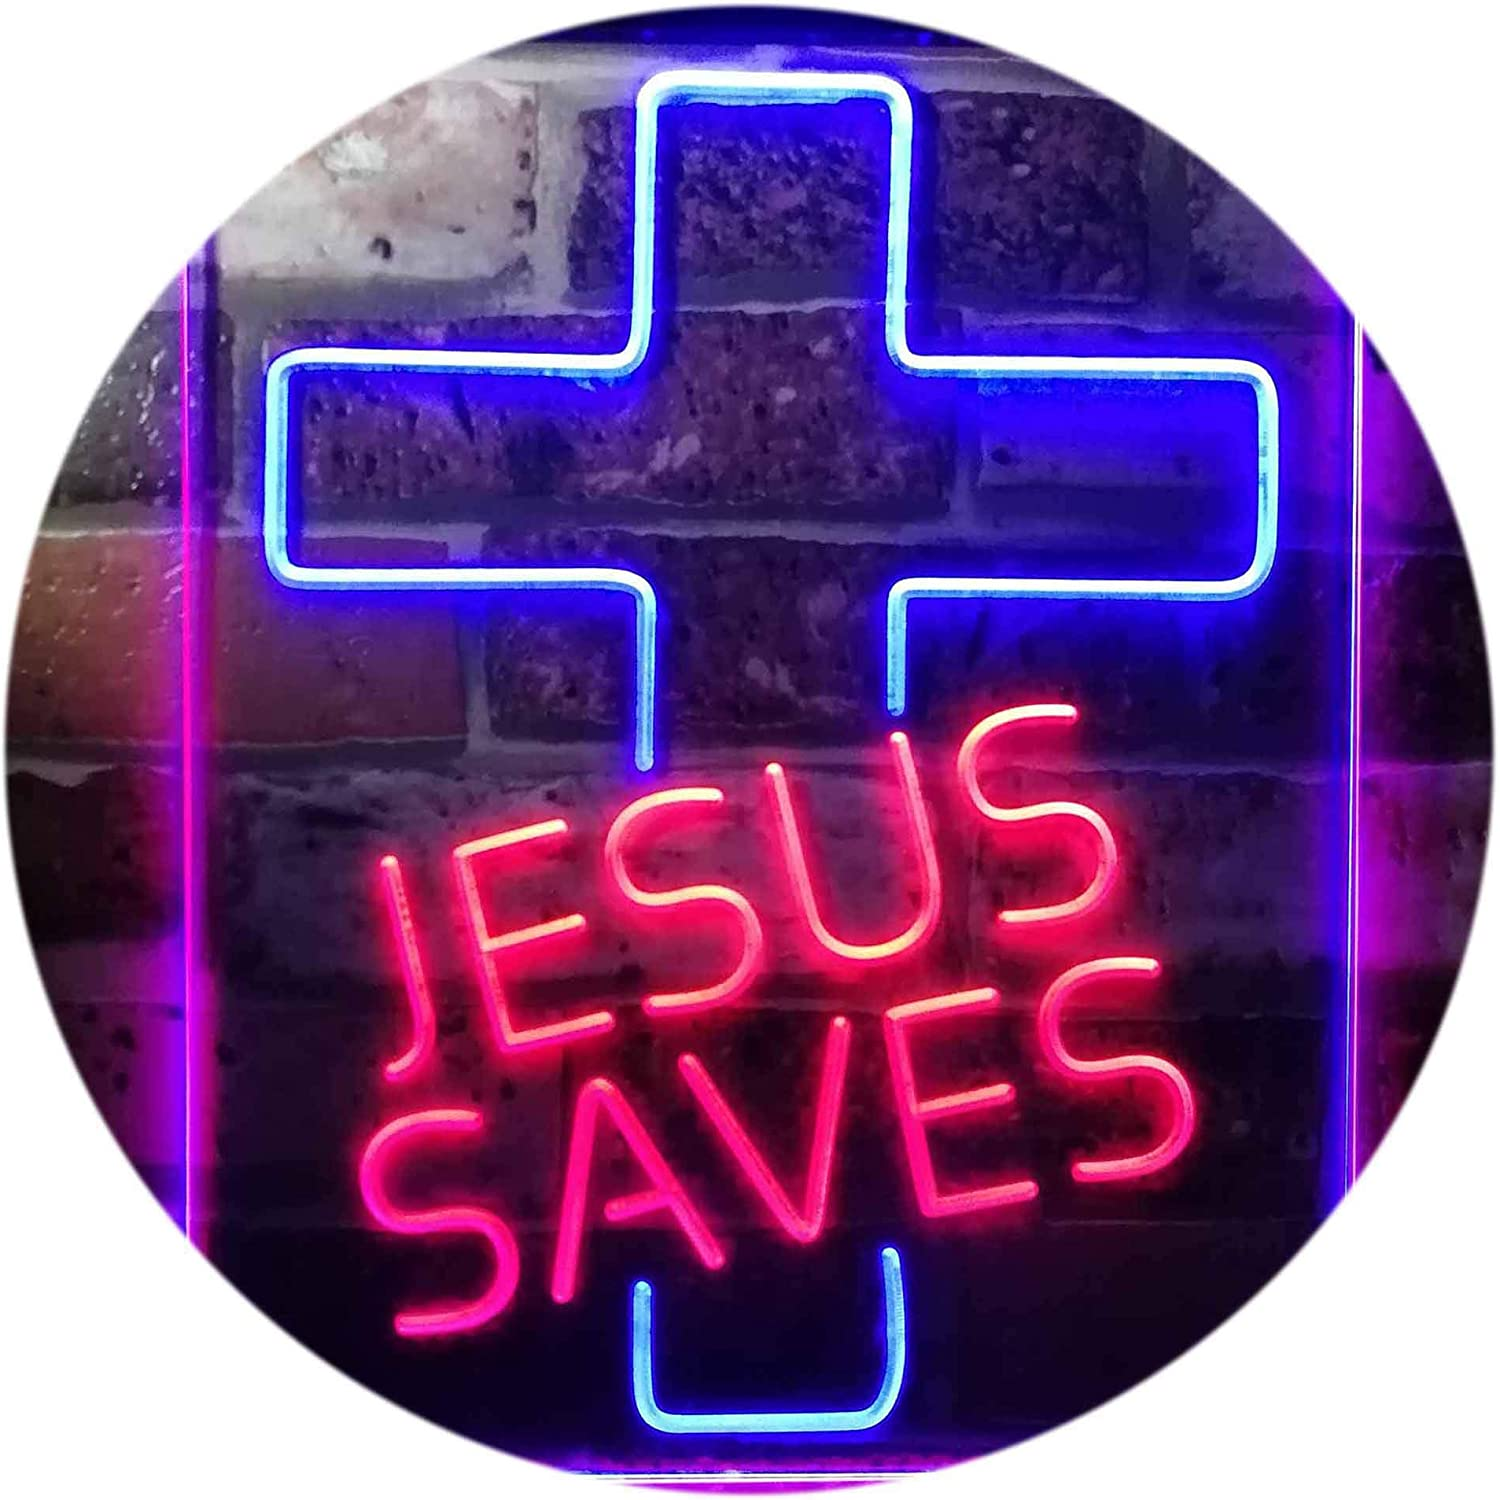 ADVPRO Jesus Saves Cross Home Decoration Night Light Dual Farbe LED Barlicht Neonlicht Lichtwerbung Neon Sign rot & Blau 12  x 16  st6s34-i3140-rb